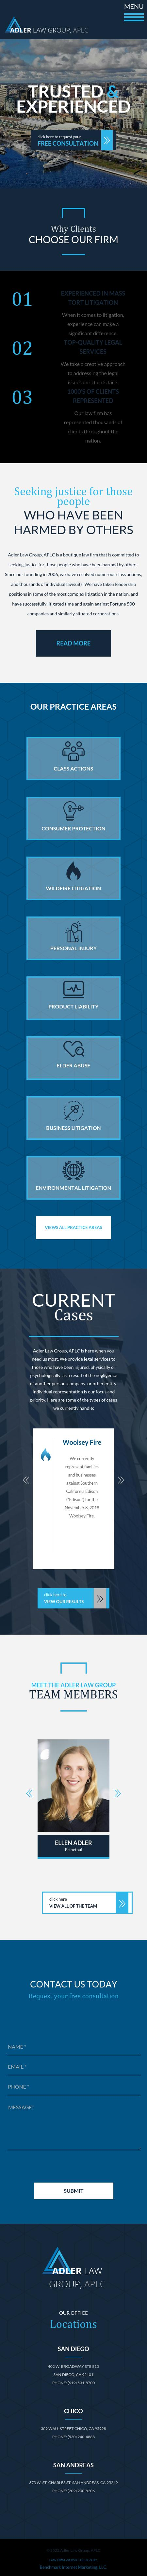 Adler Law Group - San Diego CA Lawyers